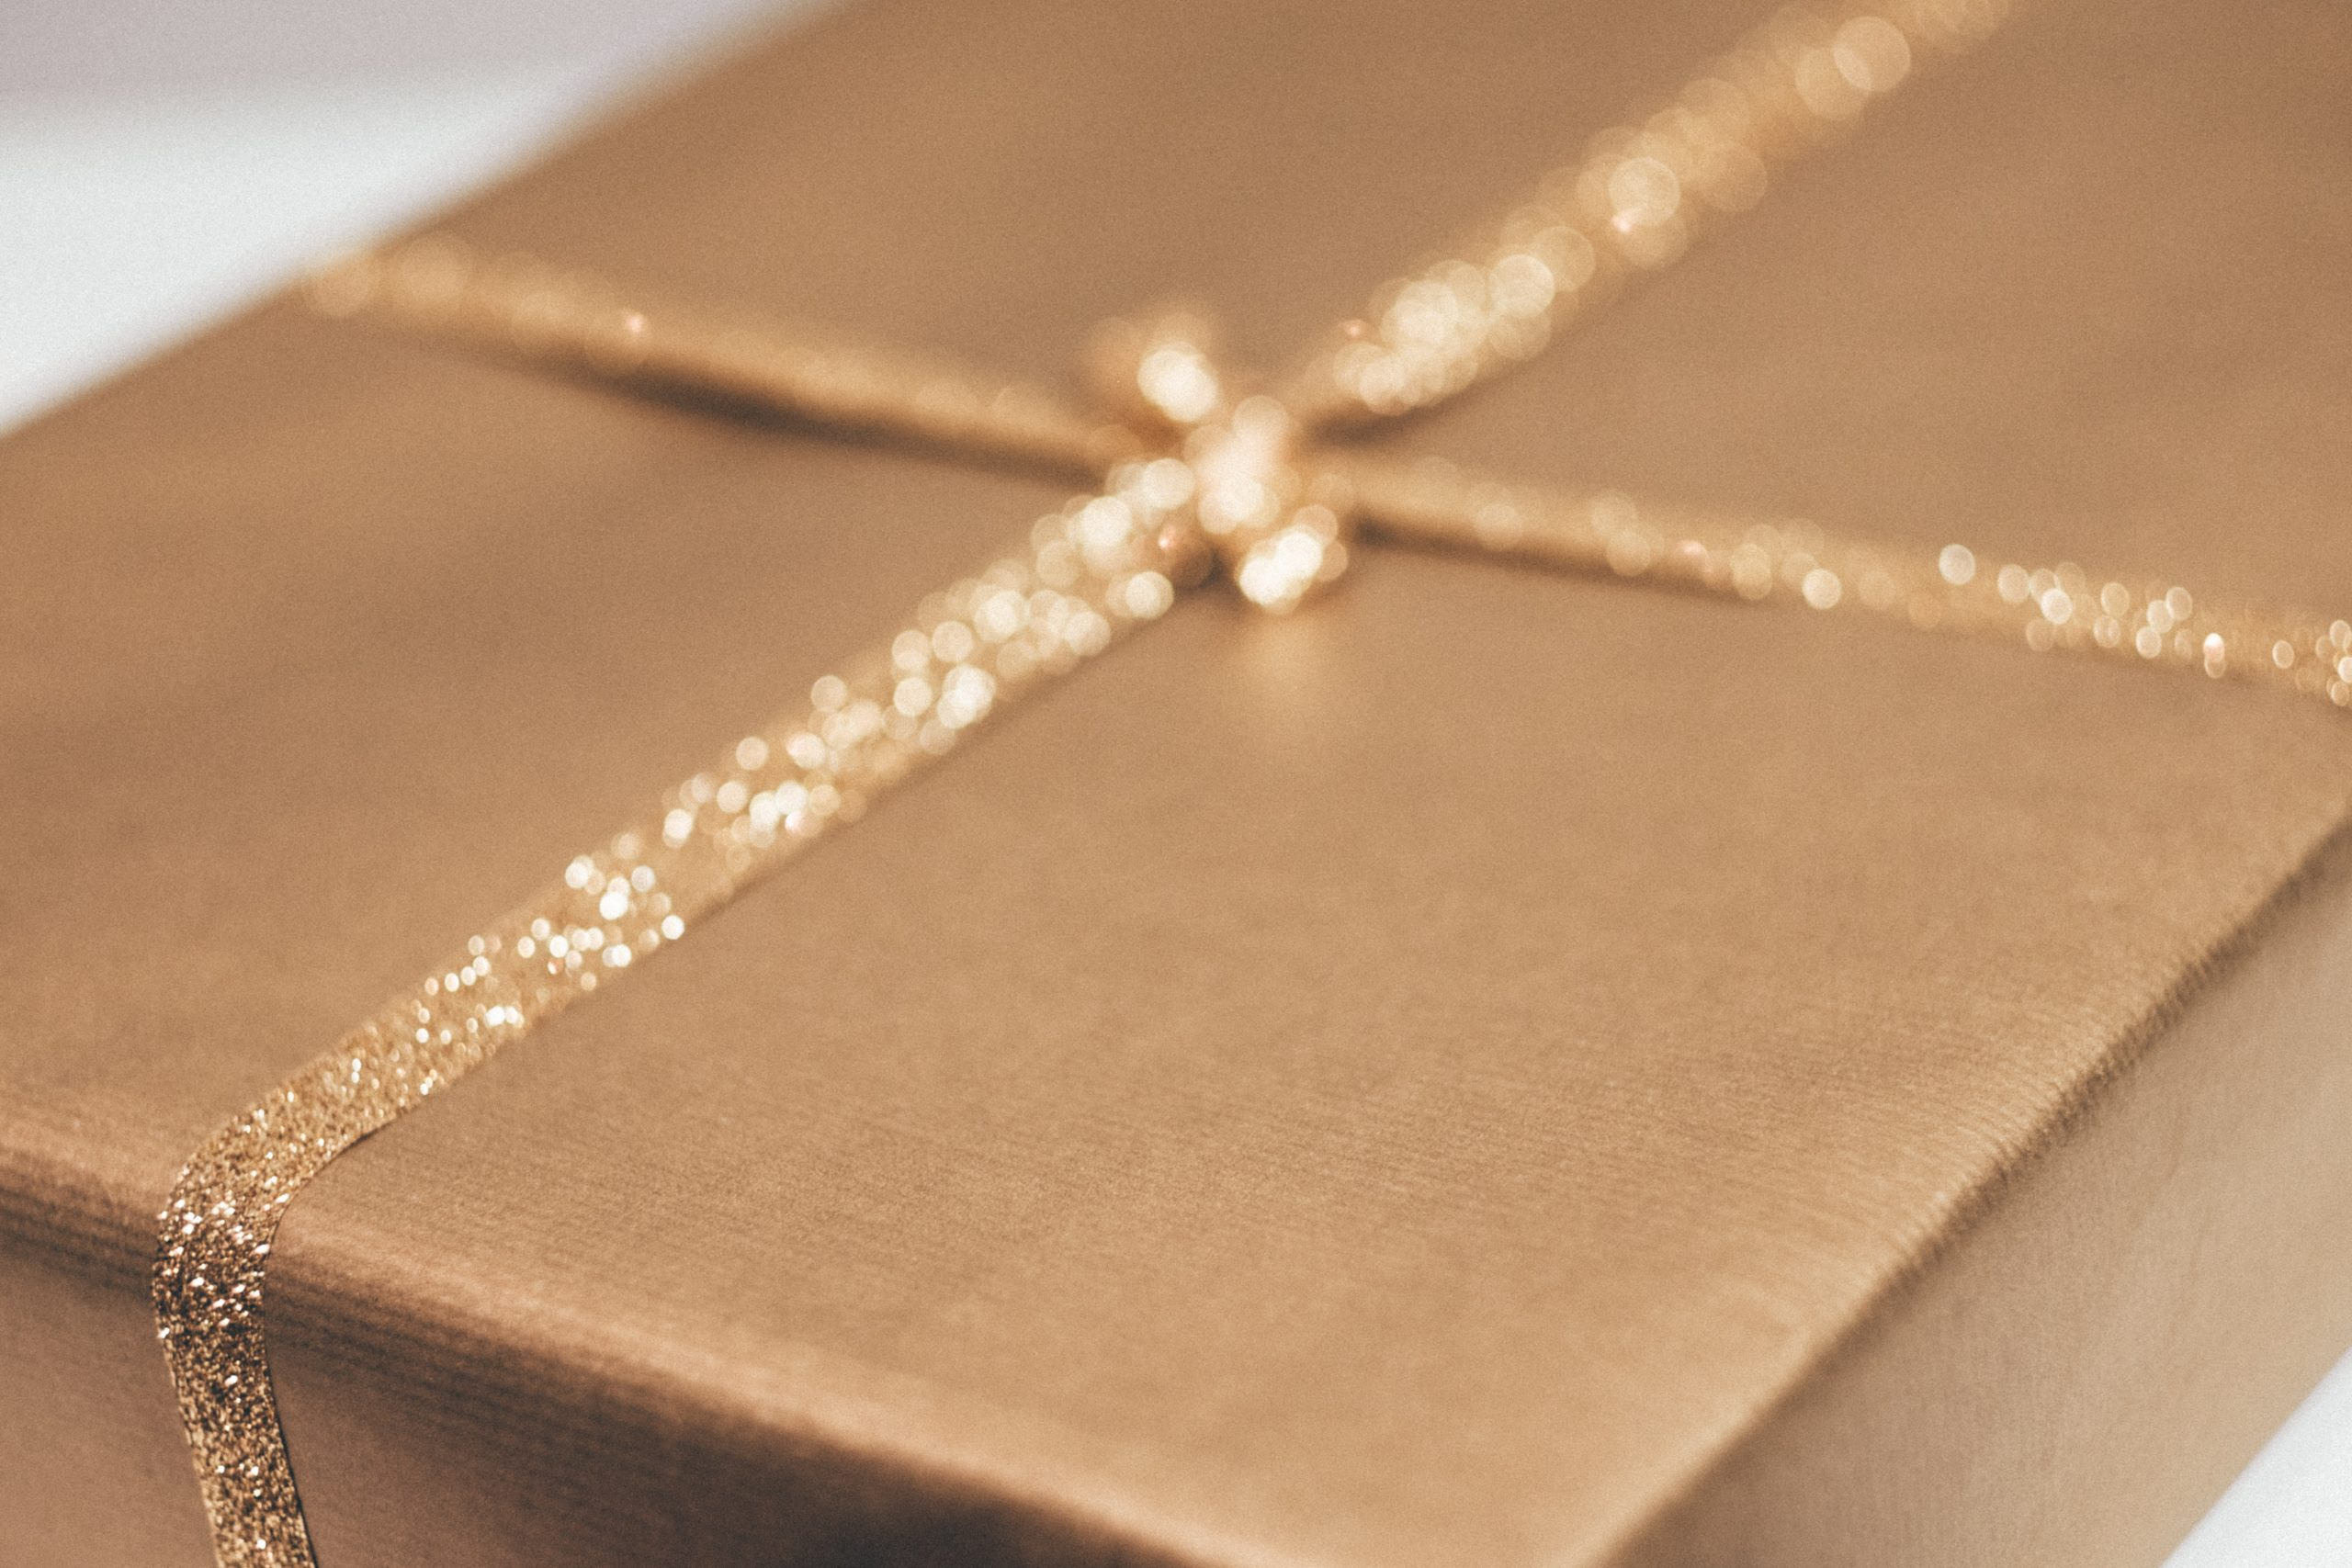 Unwanted Gifts: 3 Simple Steps to Deal